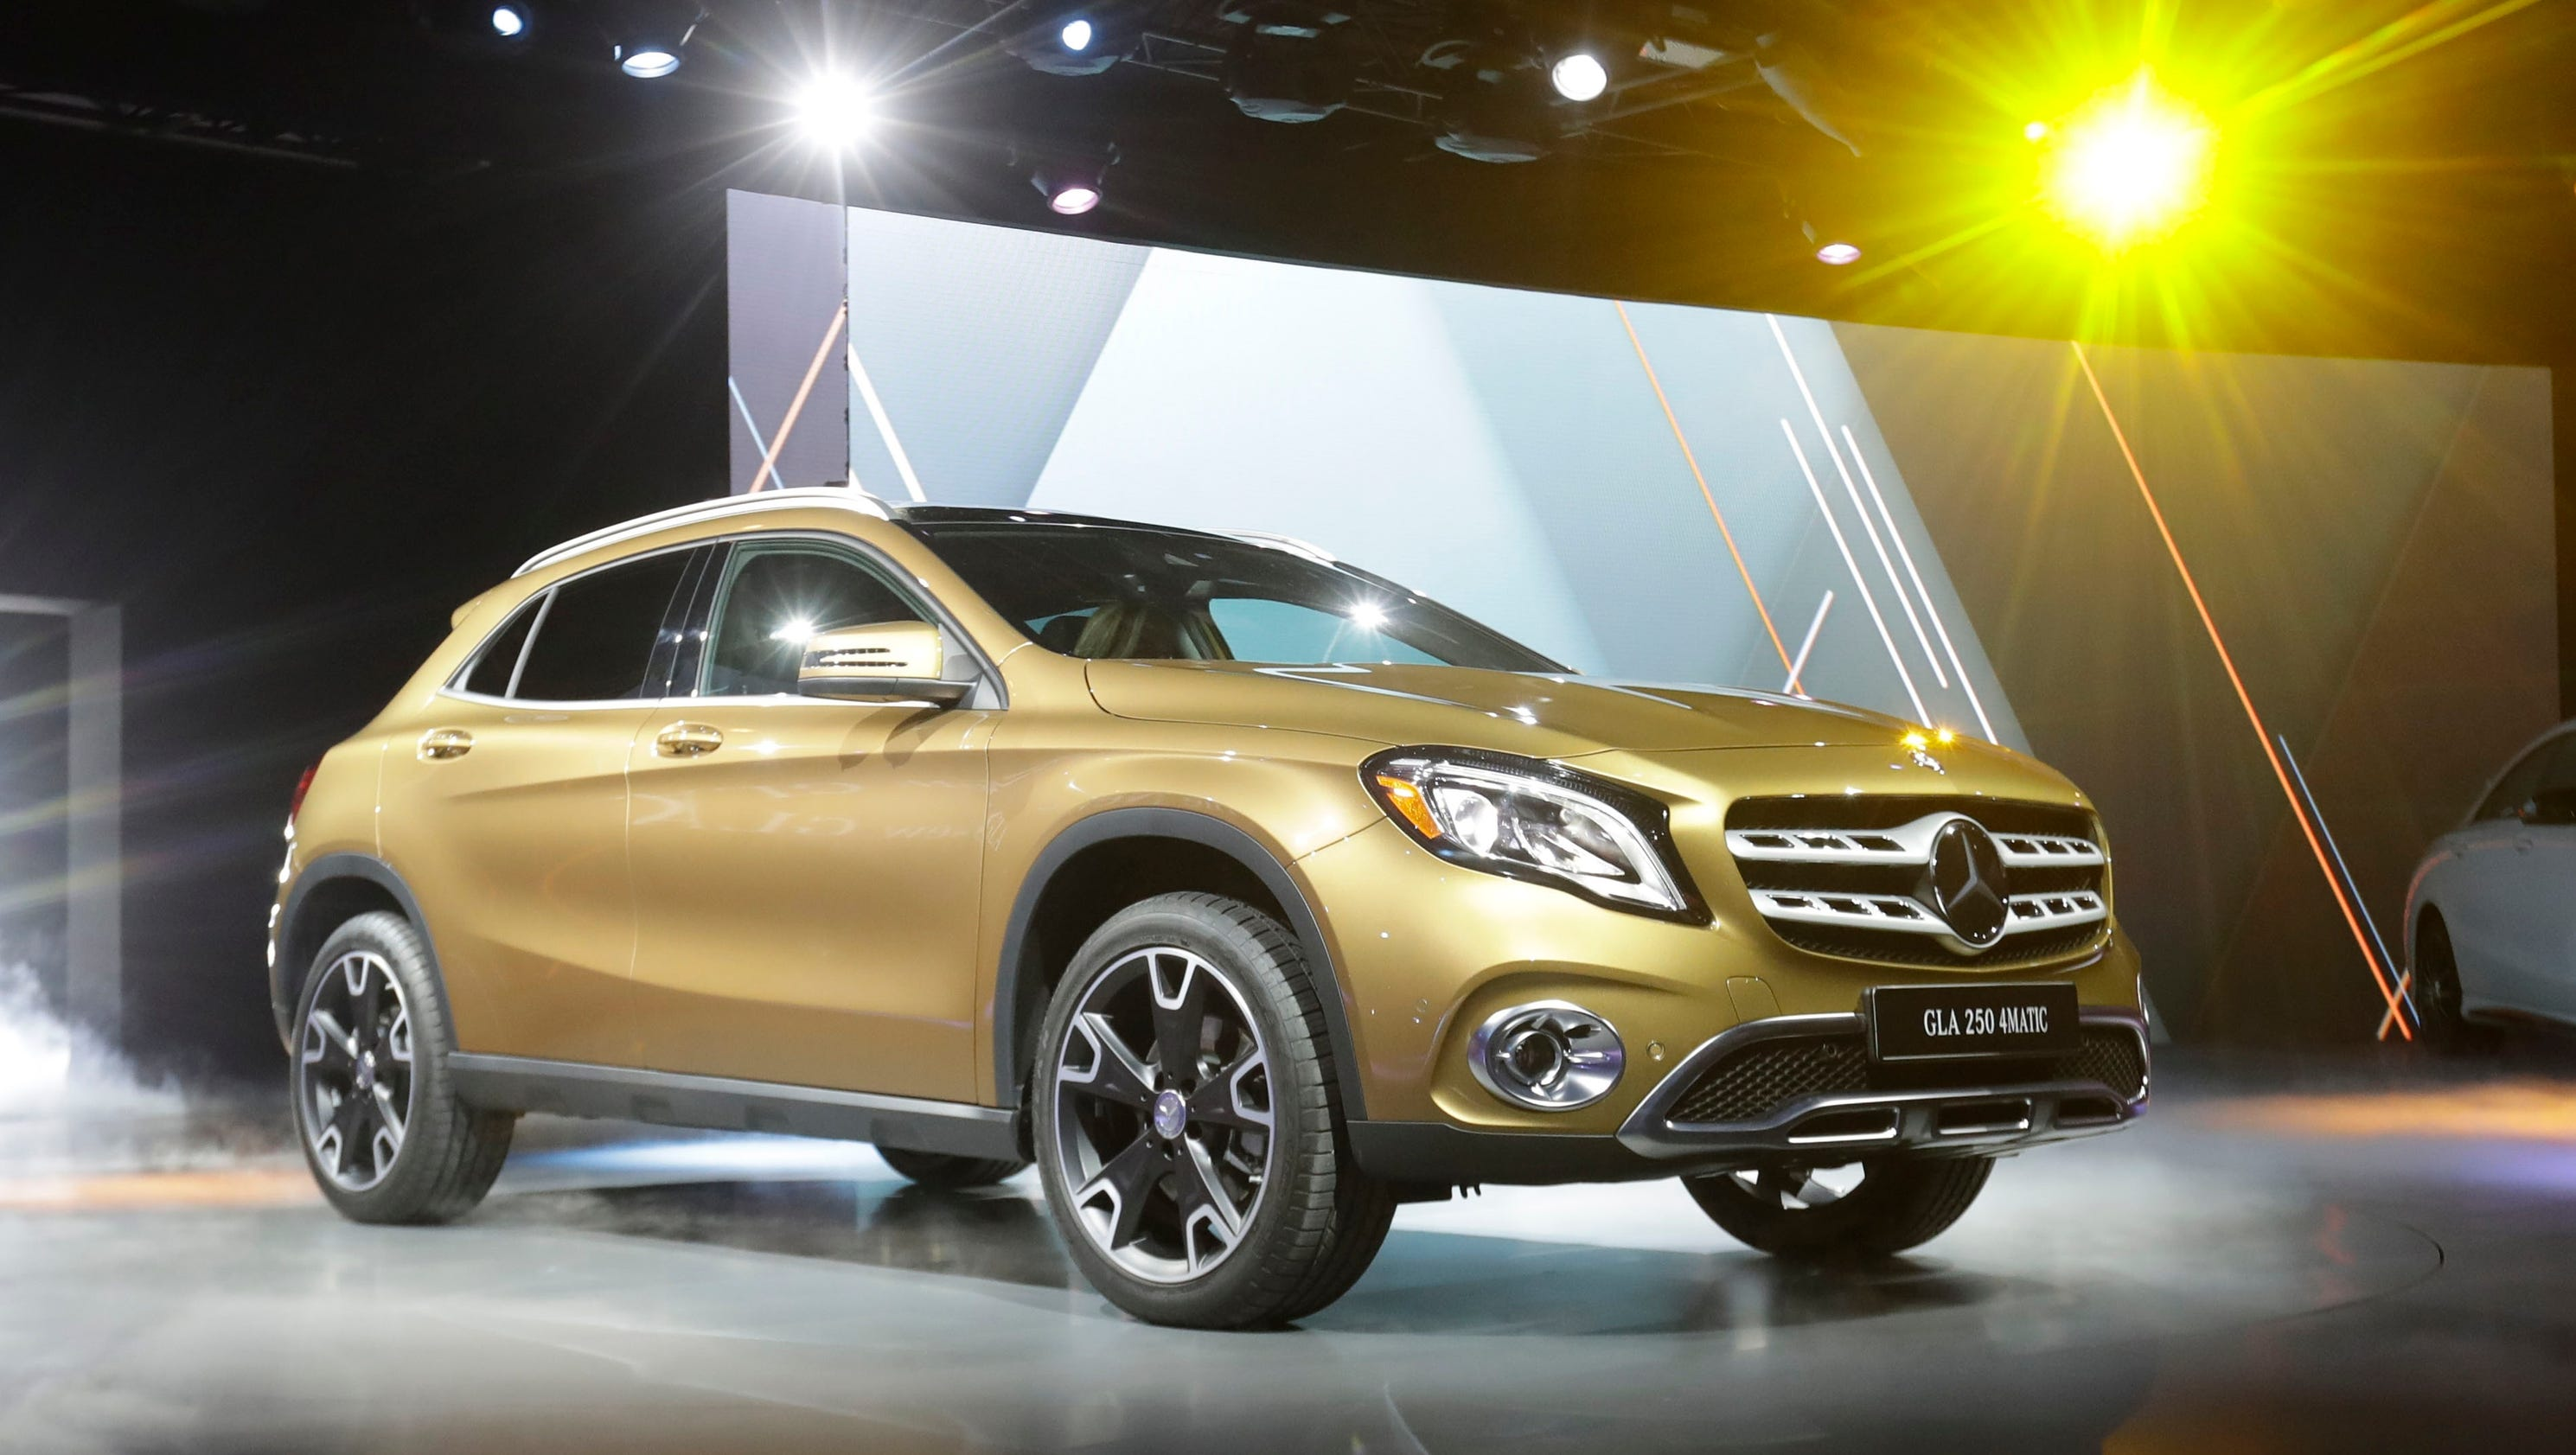 2018 mercedes gla revealed at detroit auto show - Mercedes car show ...